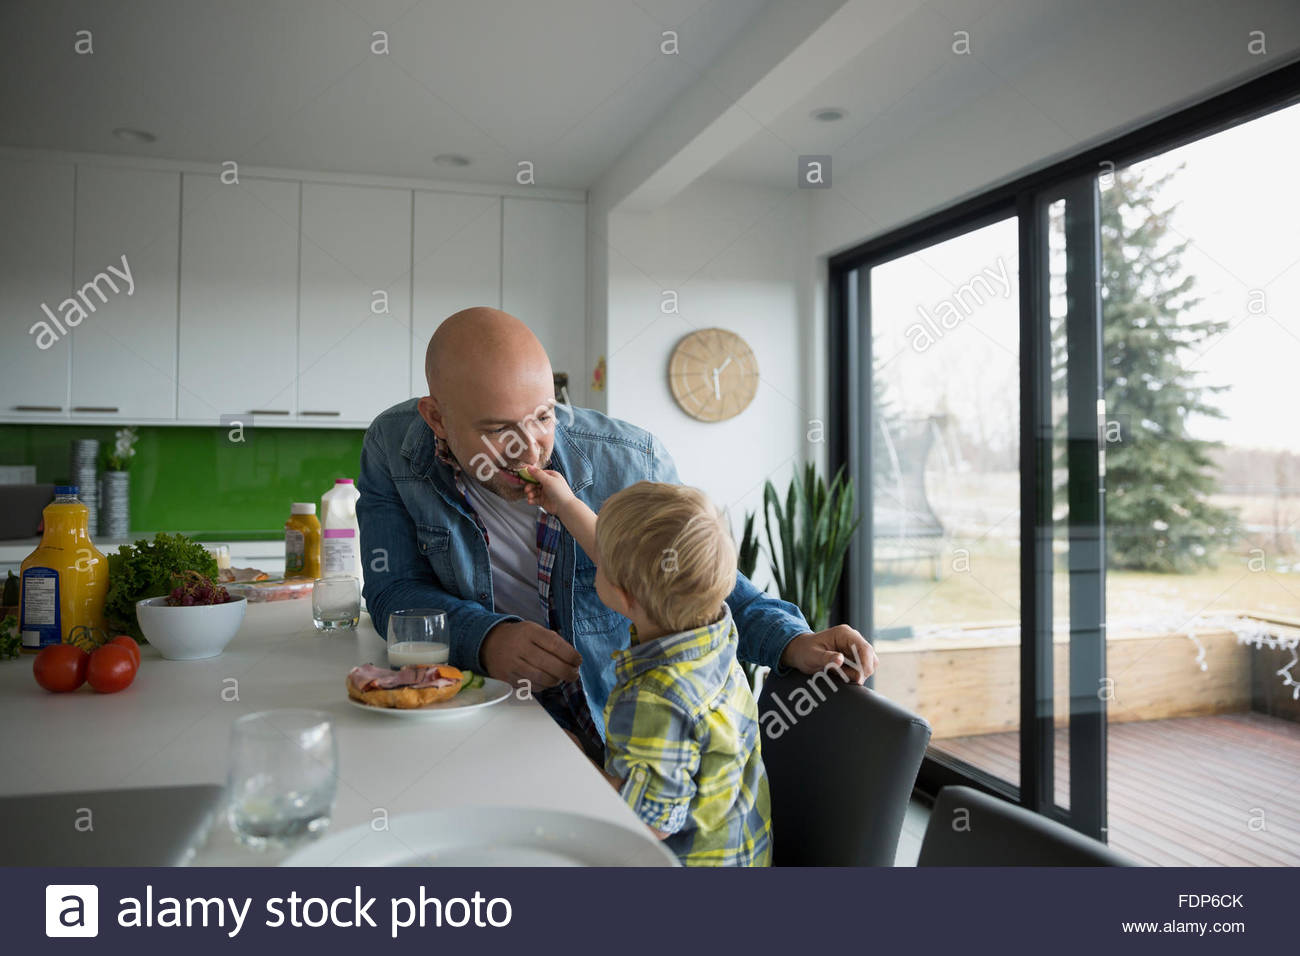 Boy feeding père à l'île de cuisine Photo Stock